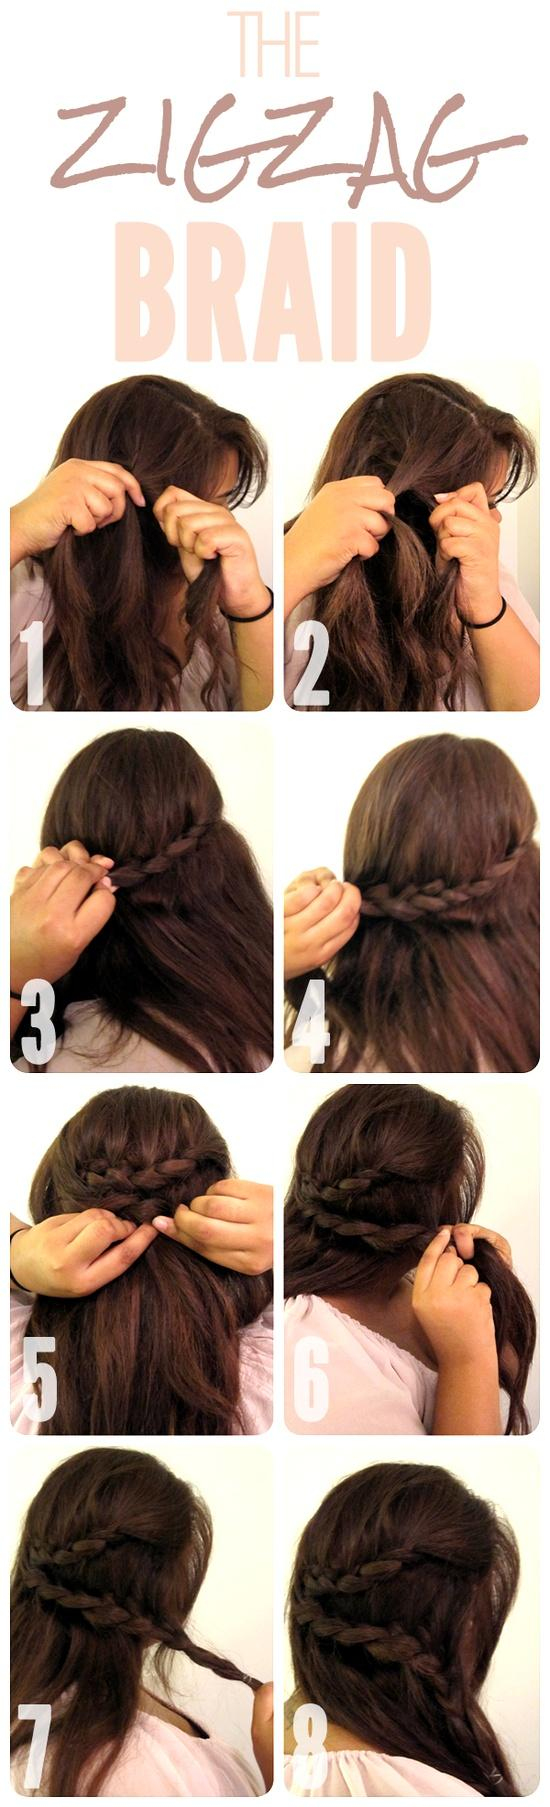 32 amazing and easy hairstyles tutorials for hot summer days style 32 amazing and easy hairstyles tutorials for hot summer days solutioingenieria Gallery